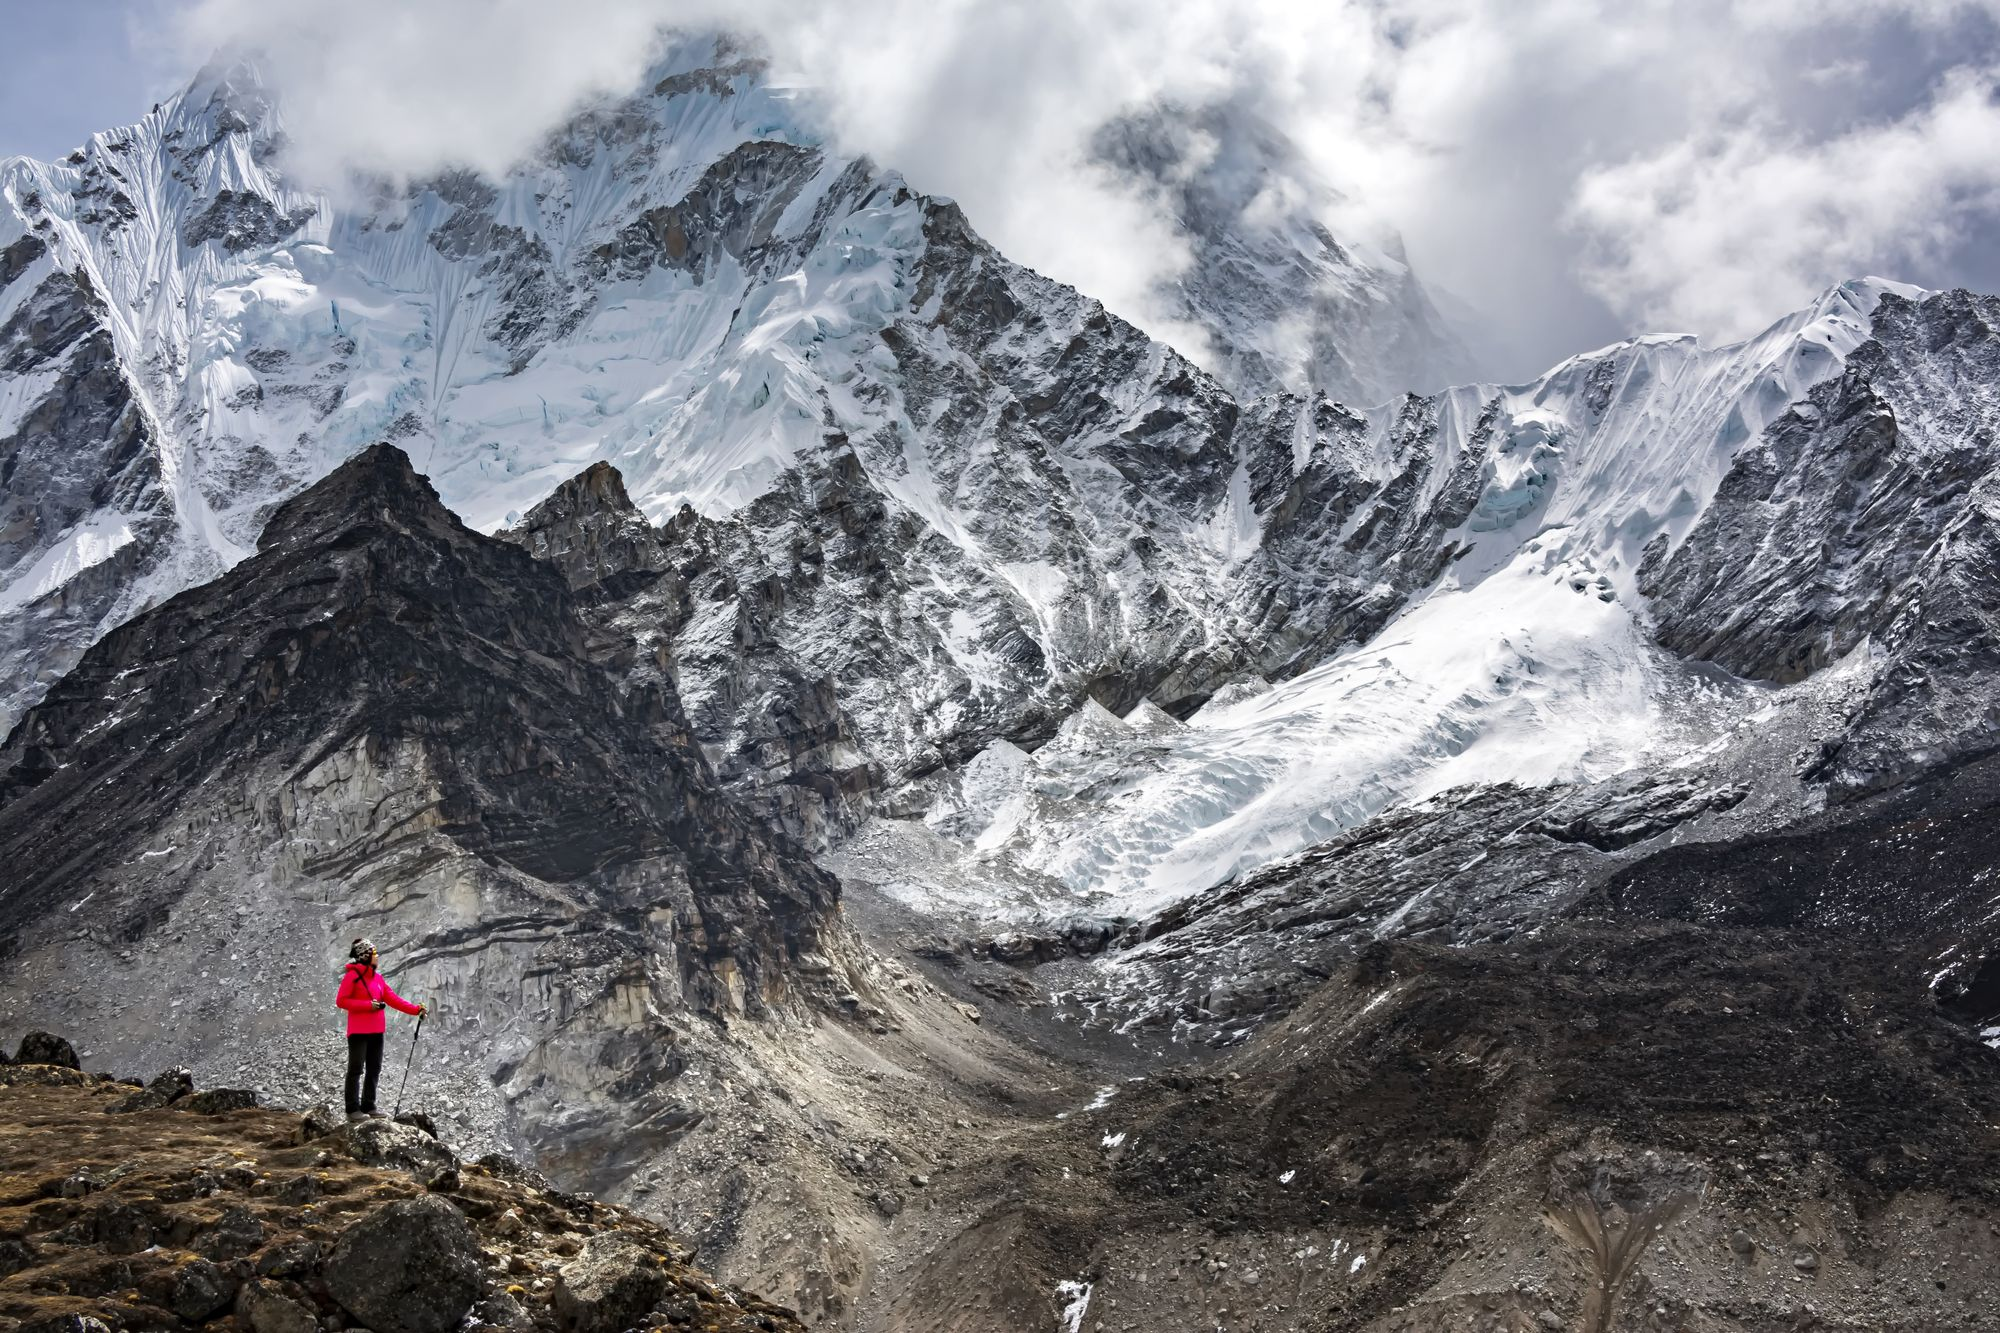 How a Trip to the Himalayas Changed an Influencer's Entrepreneurial Mindset